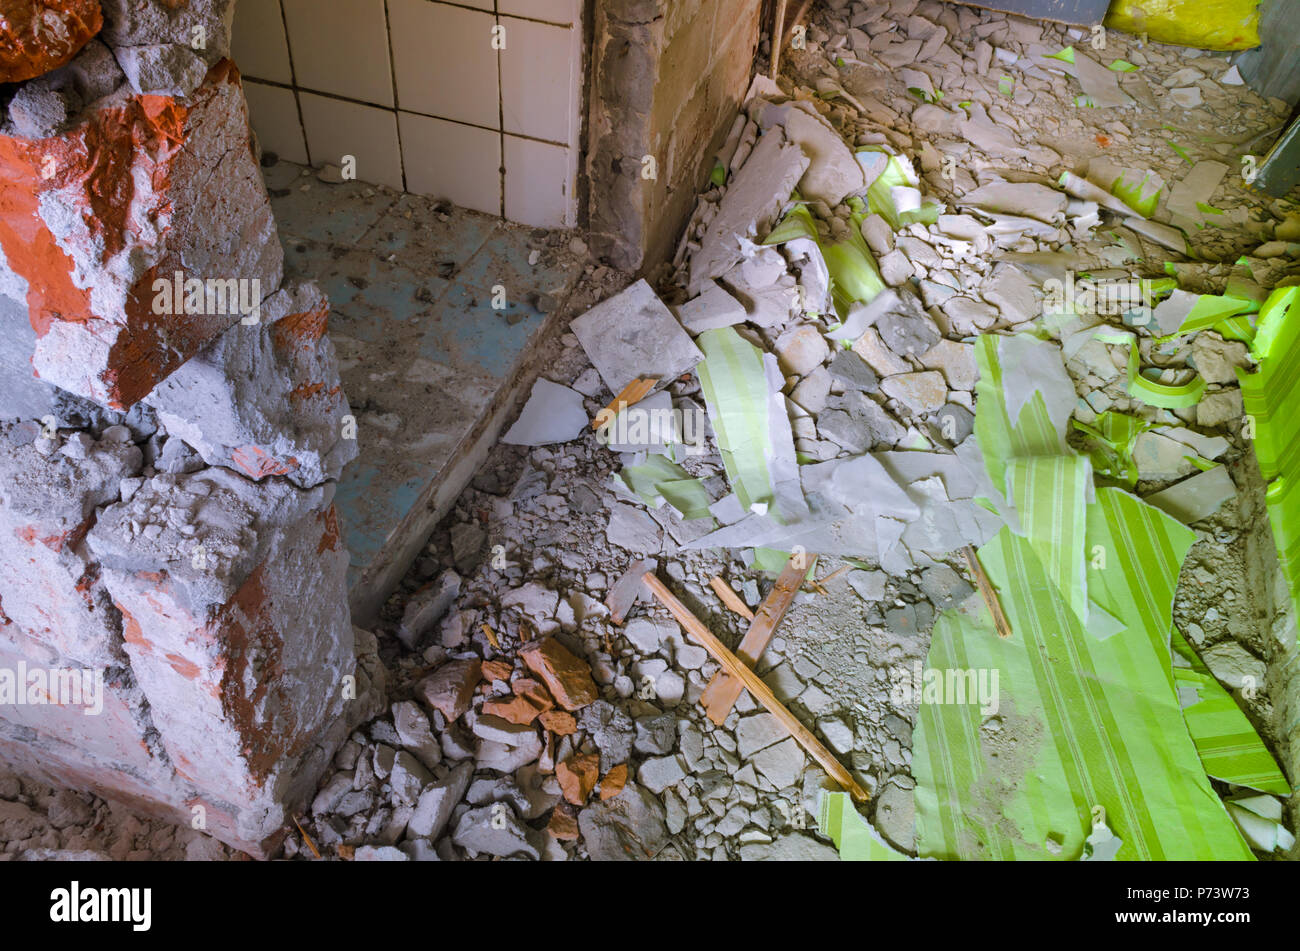 Messy interior of a house under overhaul and reconstruction. - Stock Image